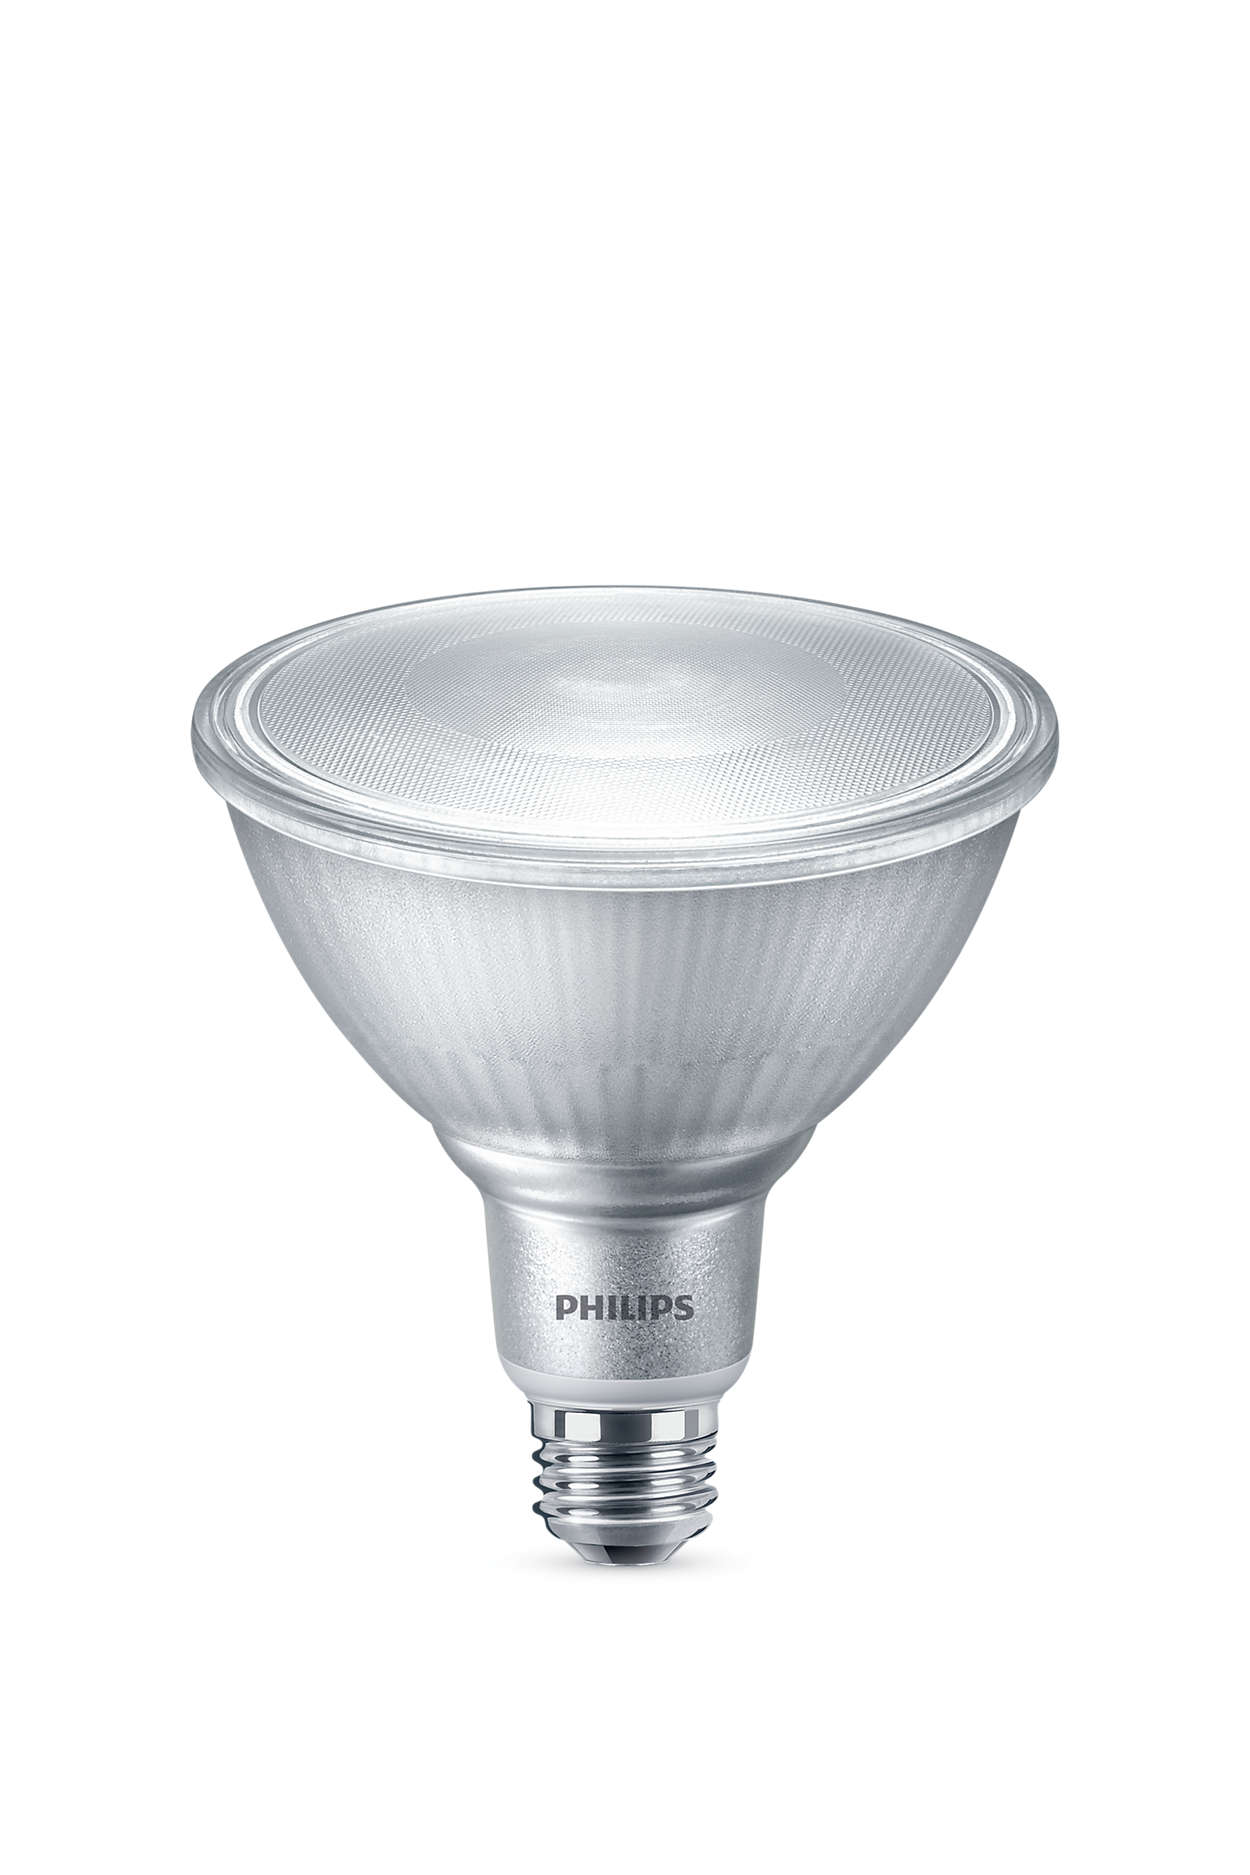 Durable LED light with a focused bright beam